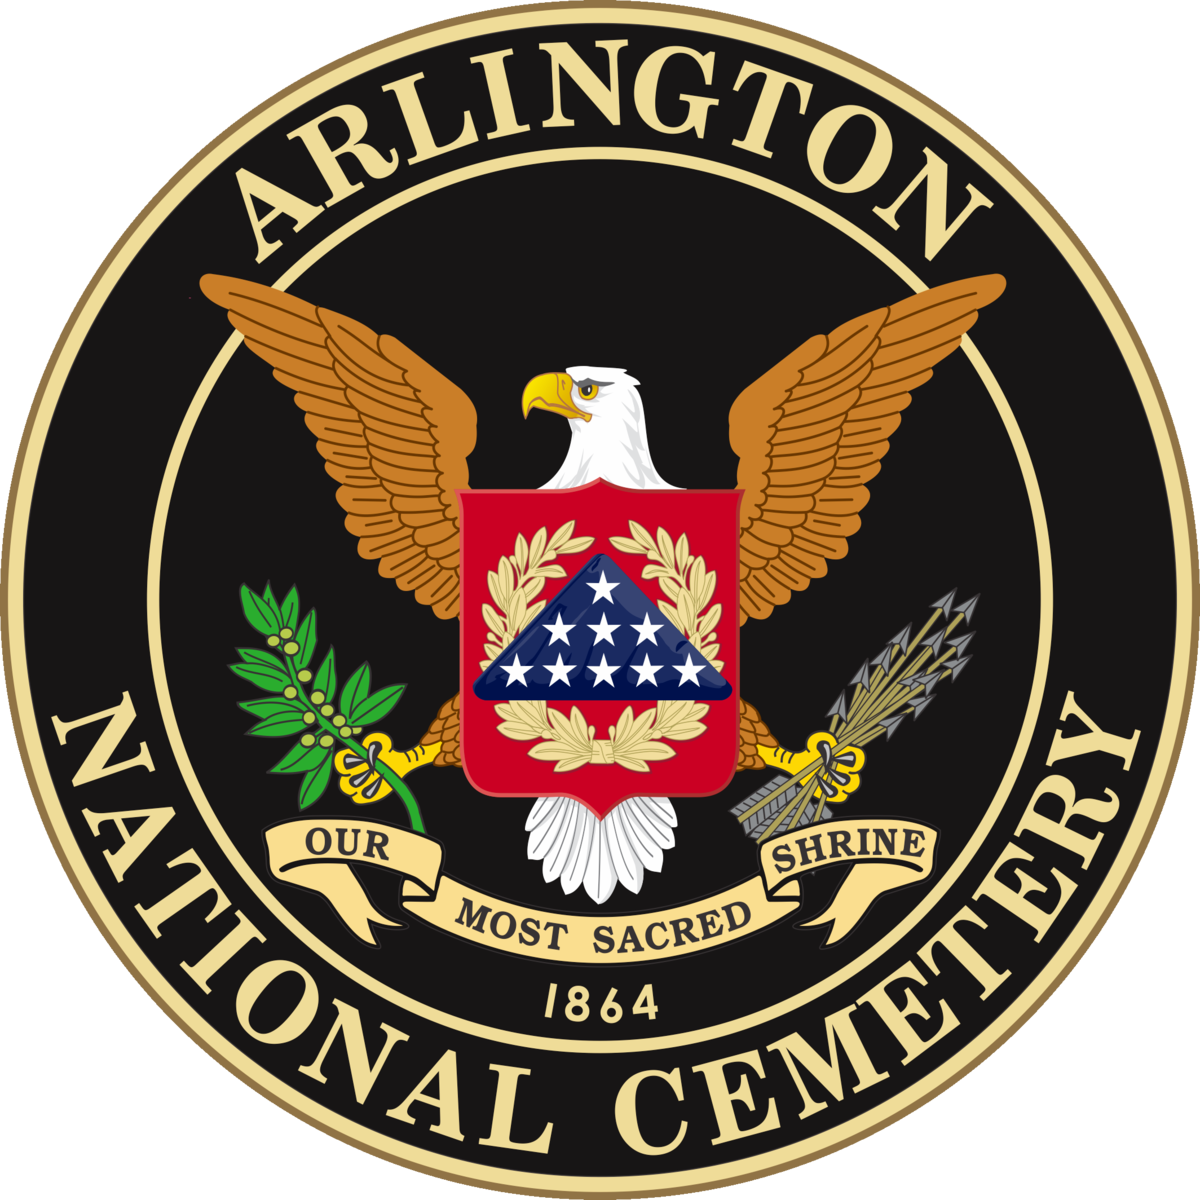 Arlington National Cemetery - Wikipedia